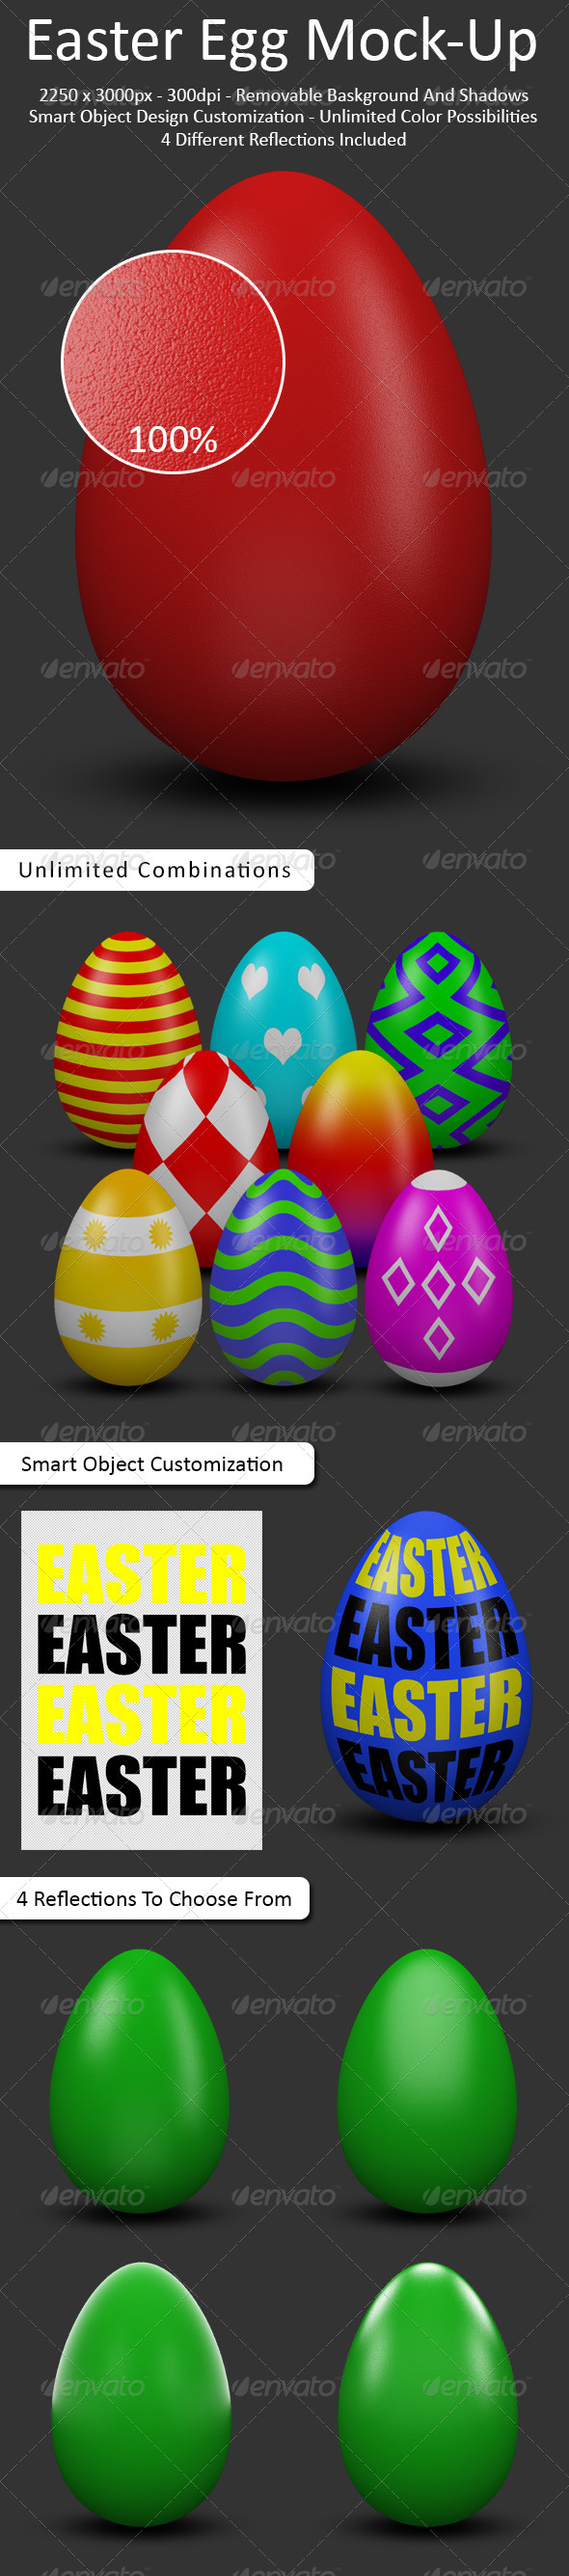 Easter Egg Mock-Up - Product Mock-Ups Graphics